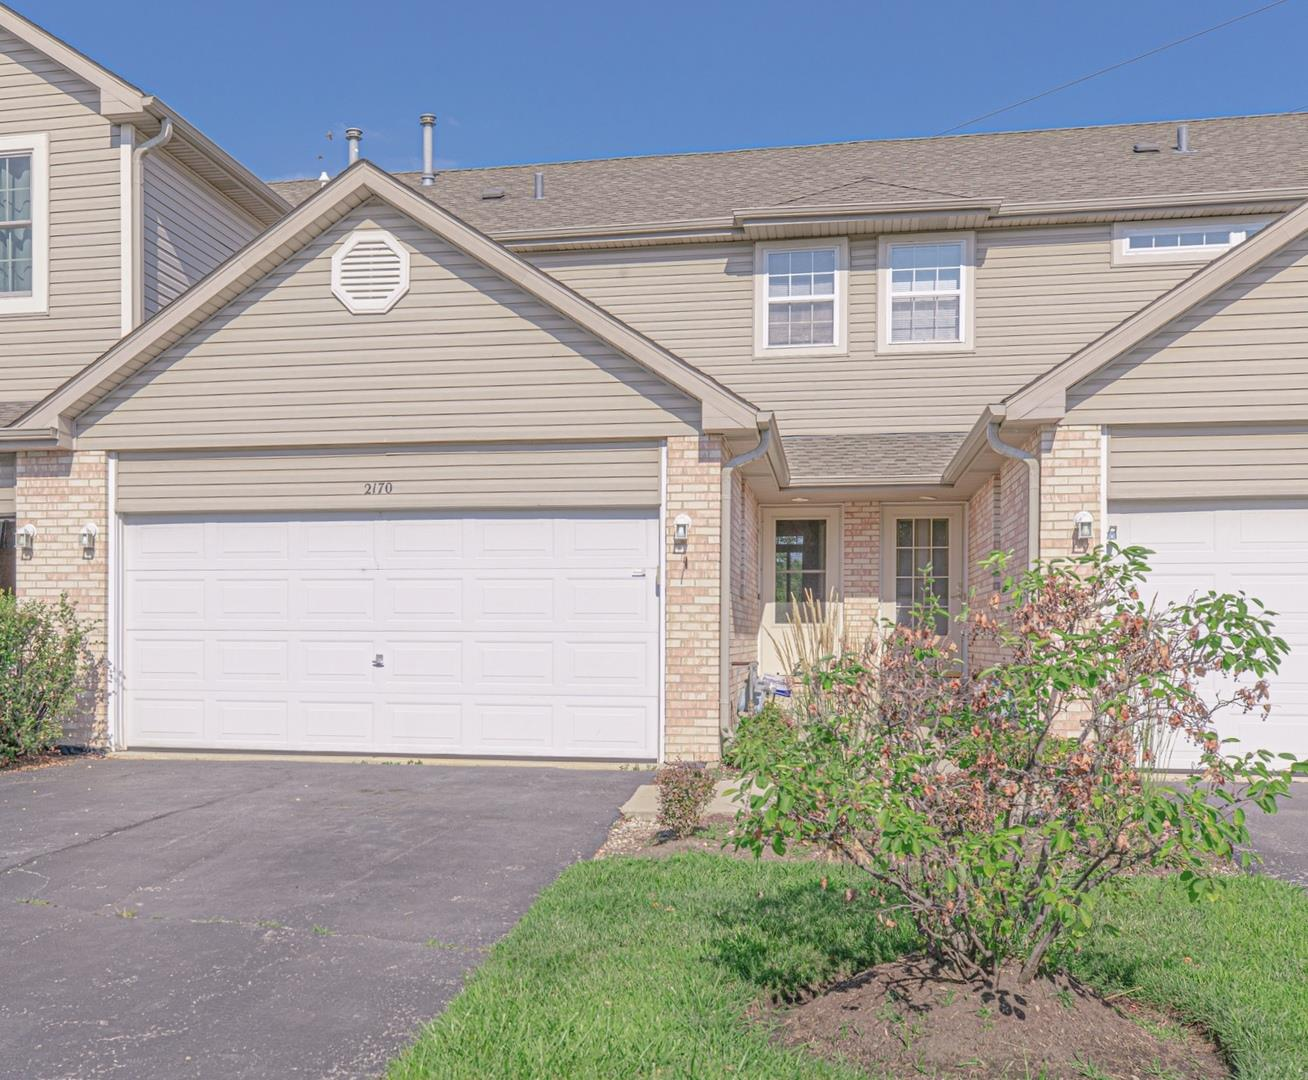 2170 W Adobe Drive, Addison, IL 60101 - #: 10800260